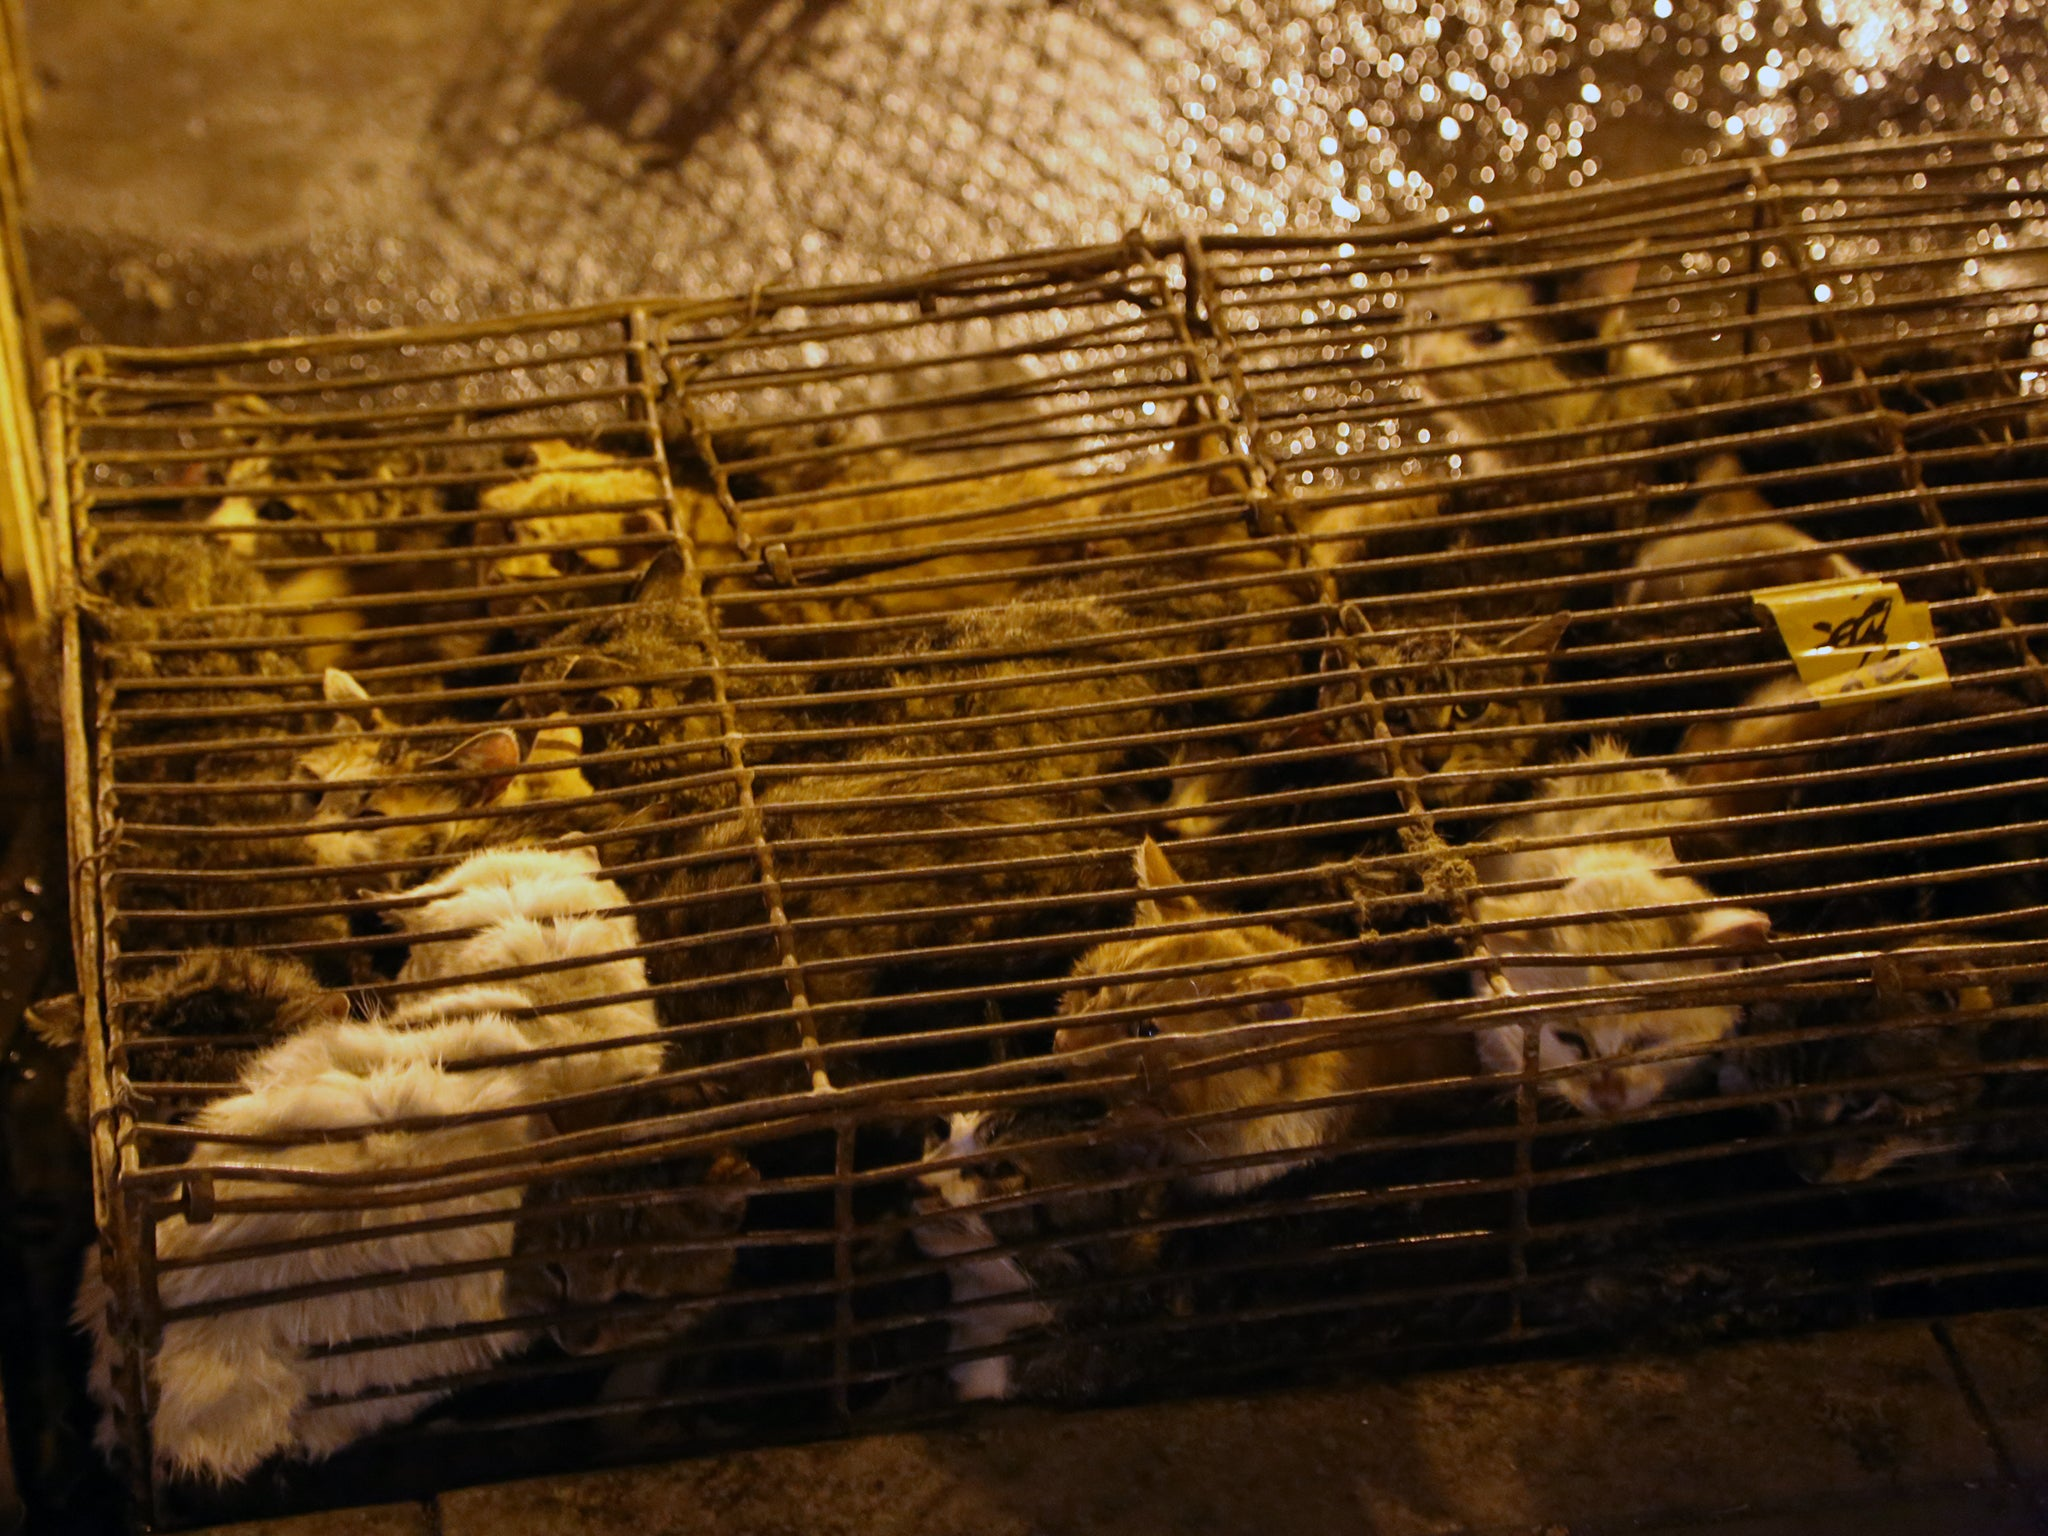 Cats crammed in wire cage, delivered to slaughterhouse in Yulin